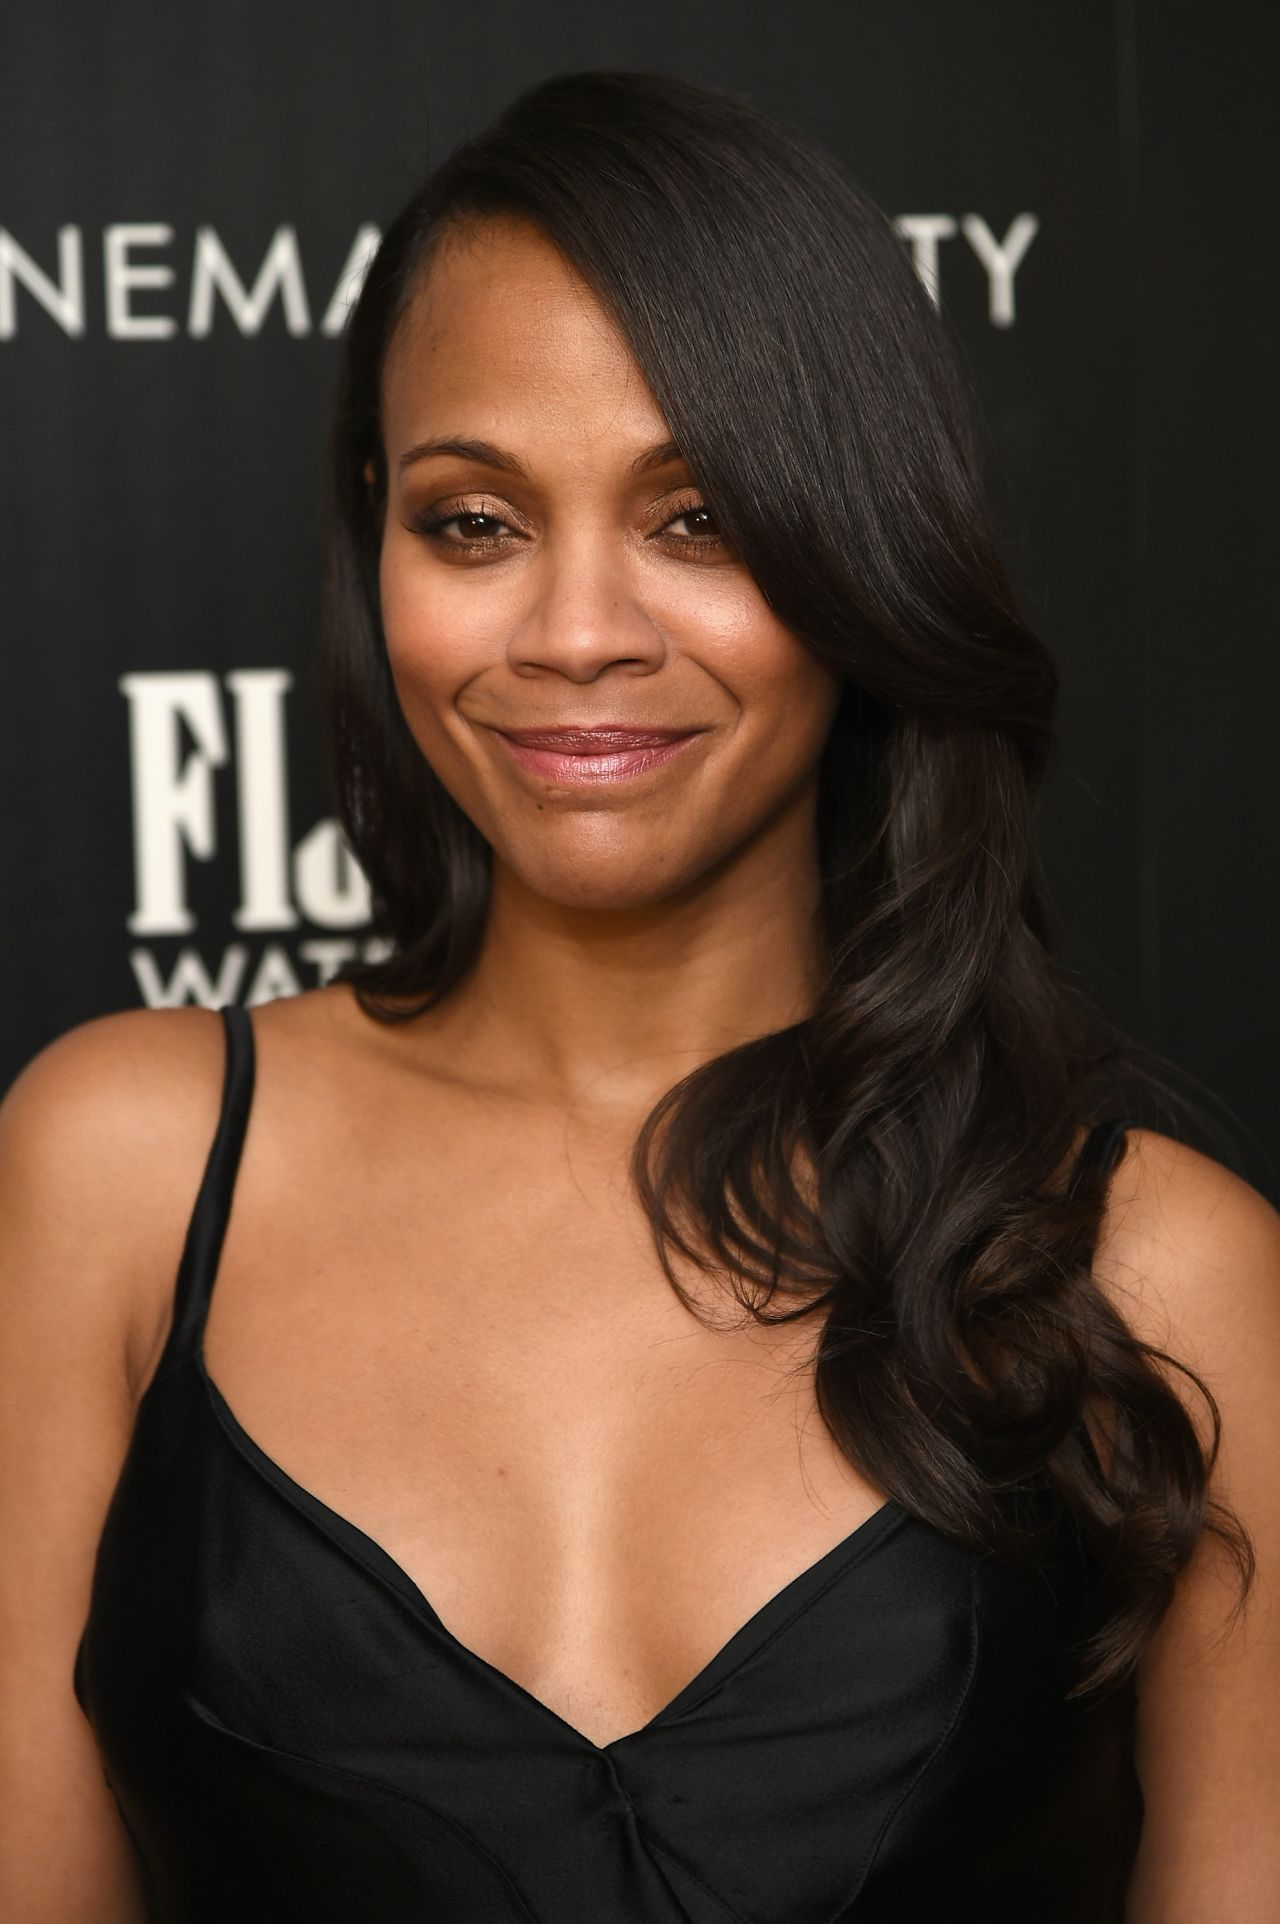 Zoe Saldana Guardians Of The Galaxy Screening In New